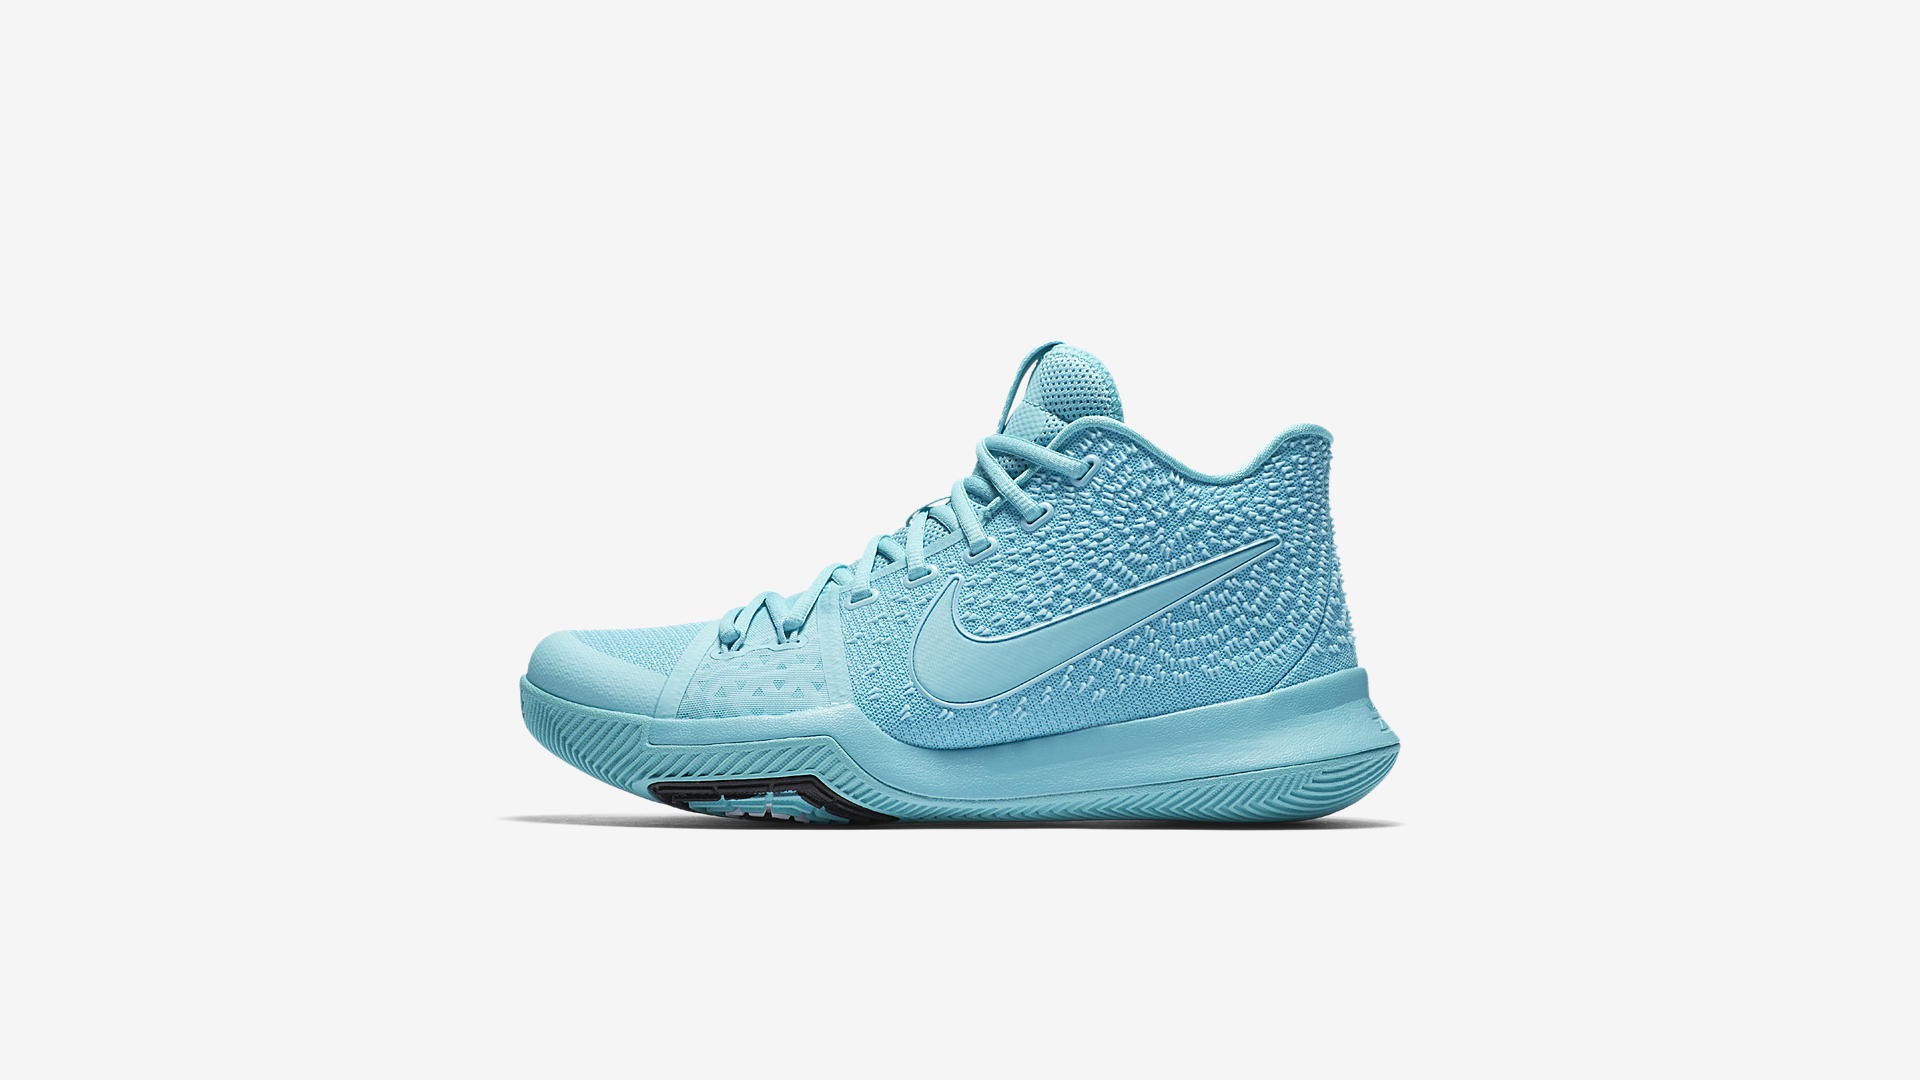 4e7afb2c231d new zealand kyrie 3 shoes wallpaper 6a233 91ddd